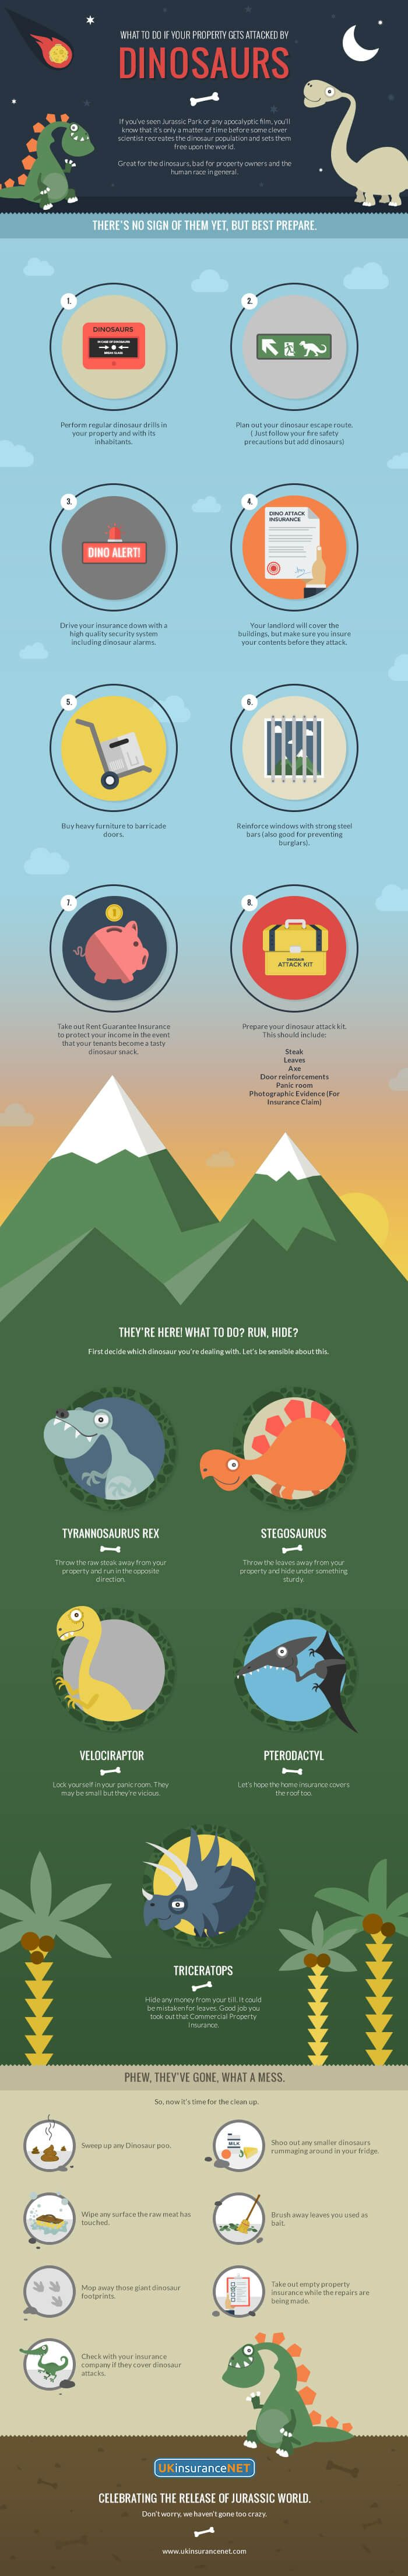 What to do if your property gets attacked by dinosaurs. (More design inspiration at www.aldenchong.com)